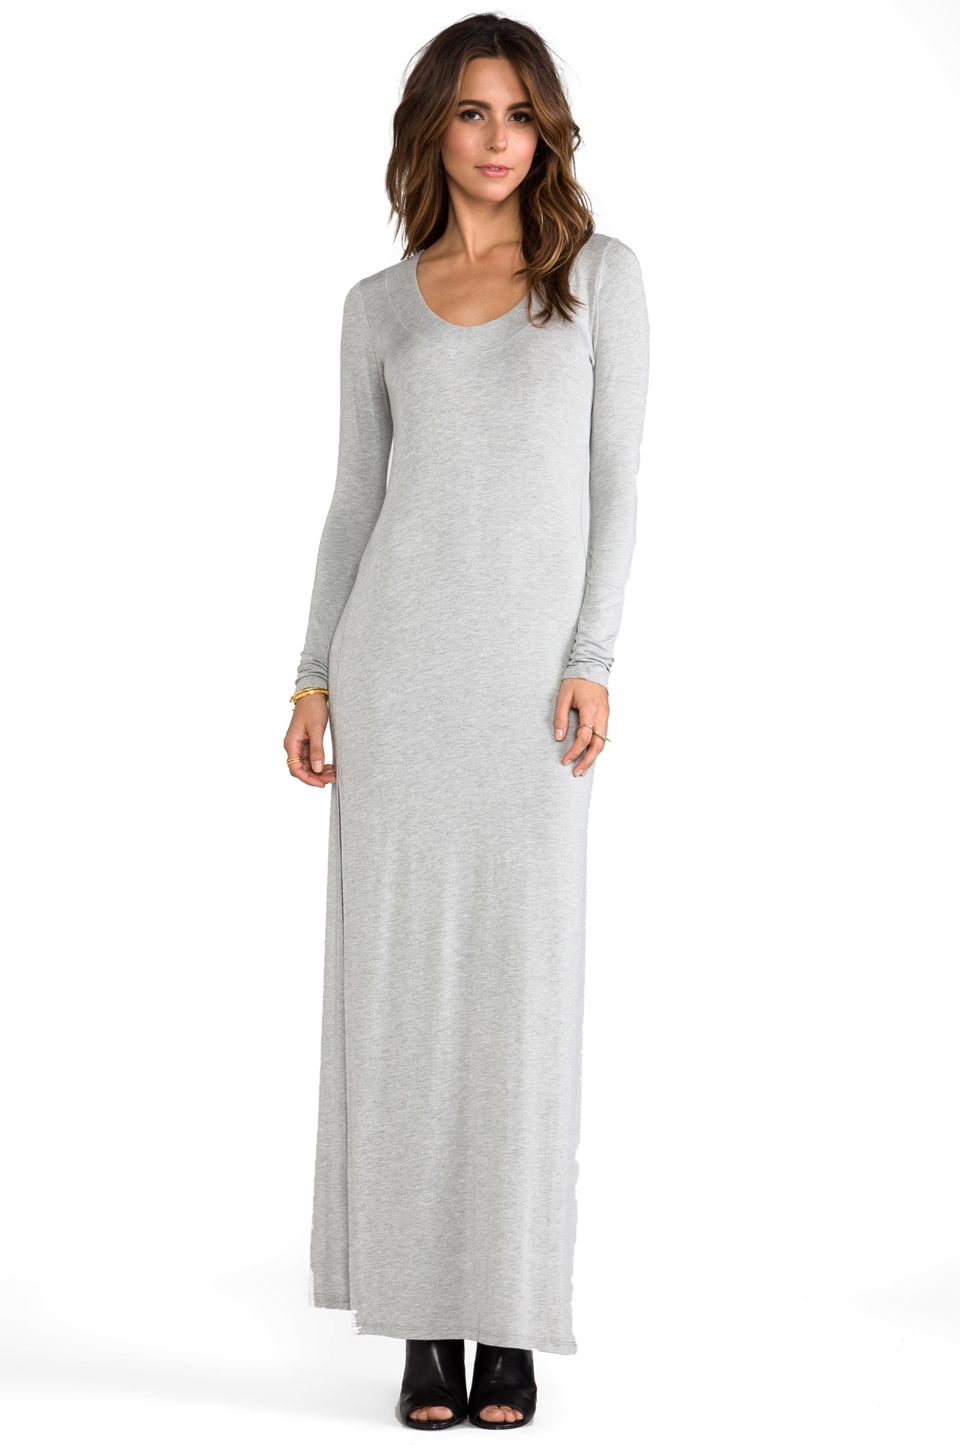 LA Made Deep Neck Maxi with Side Slits in Heather Grey